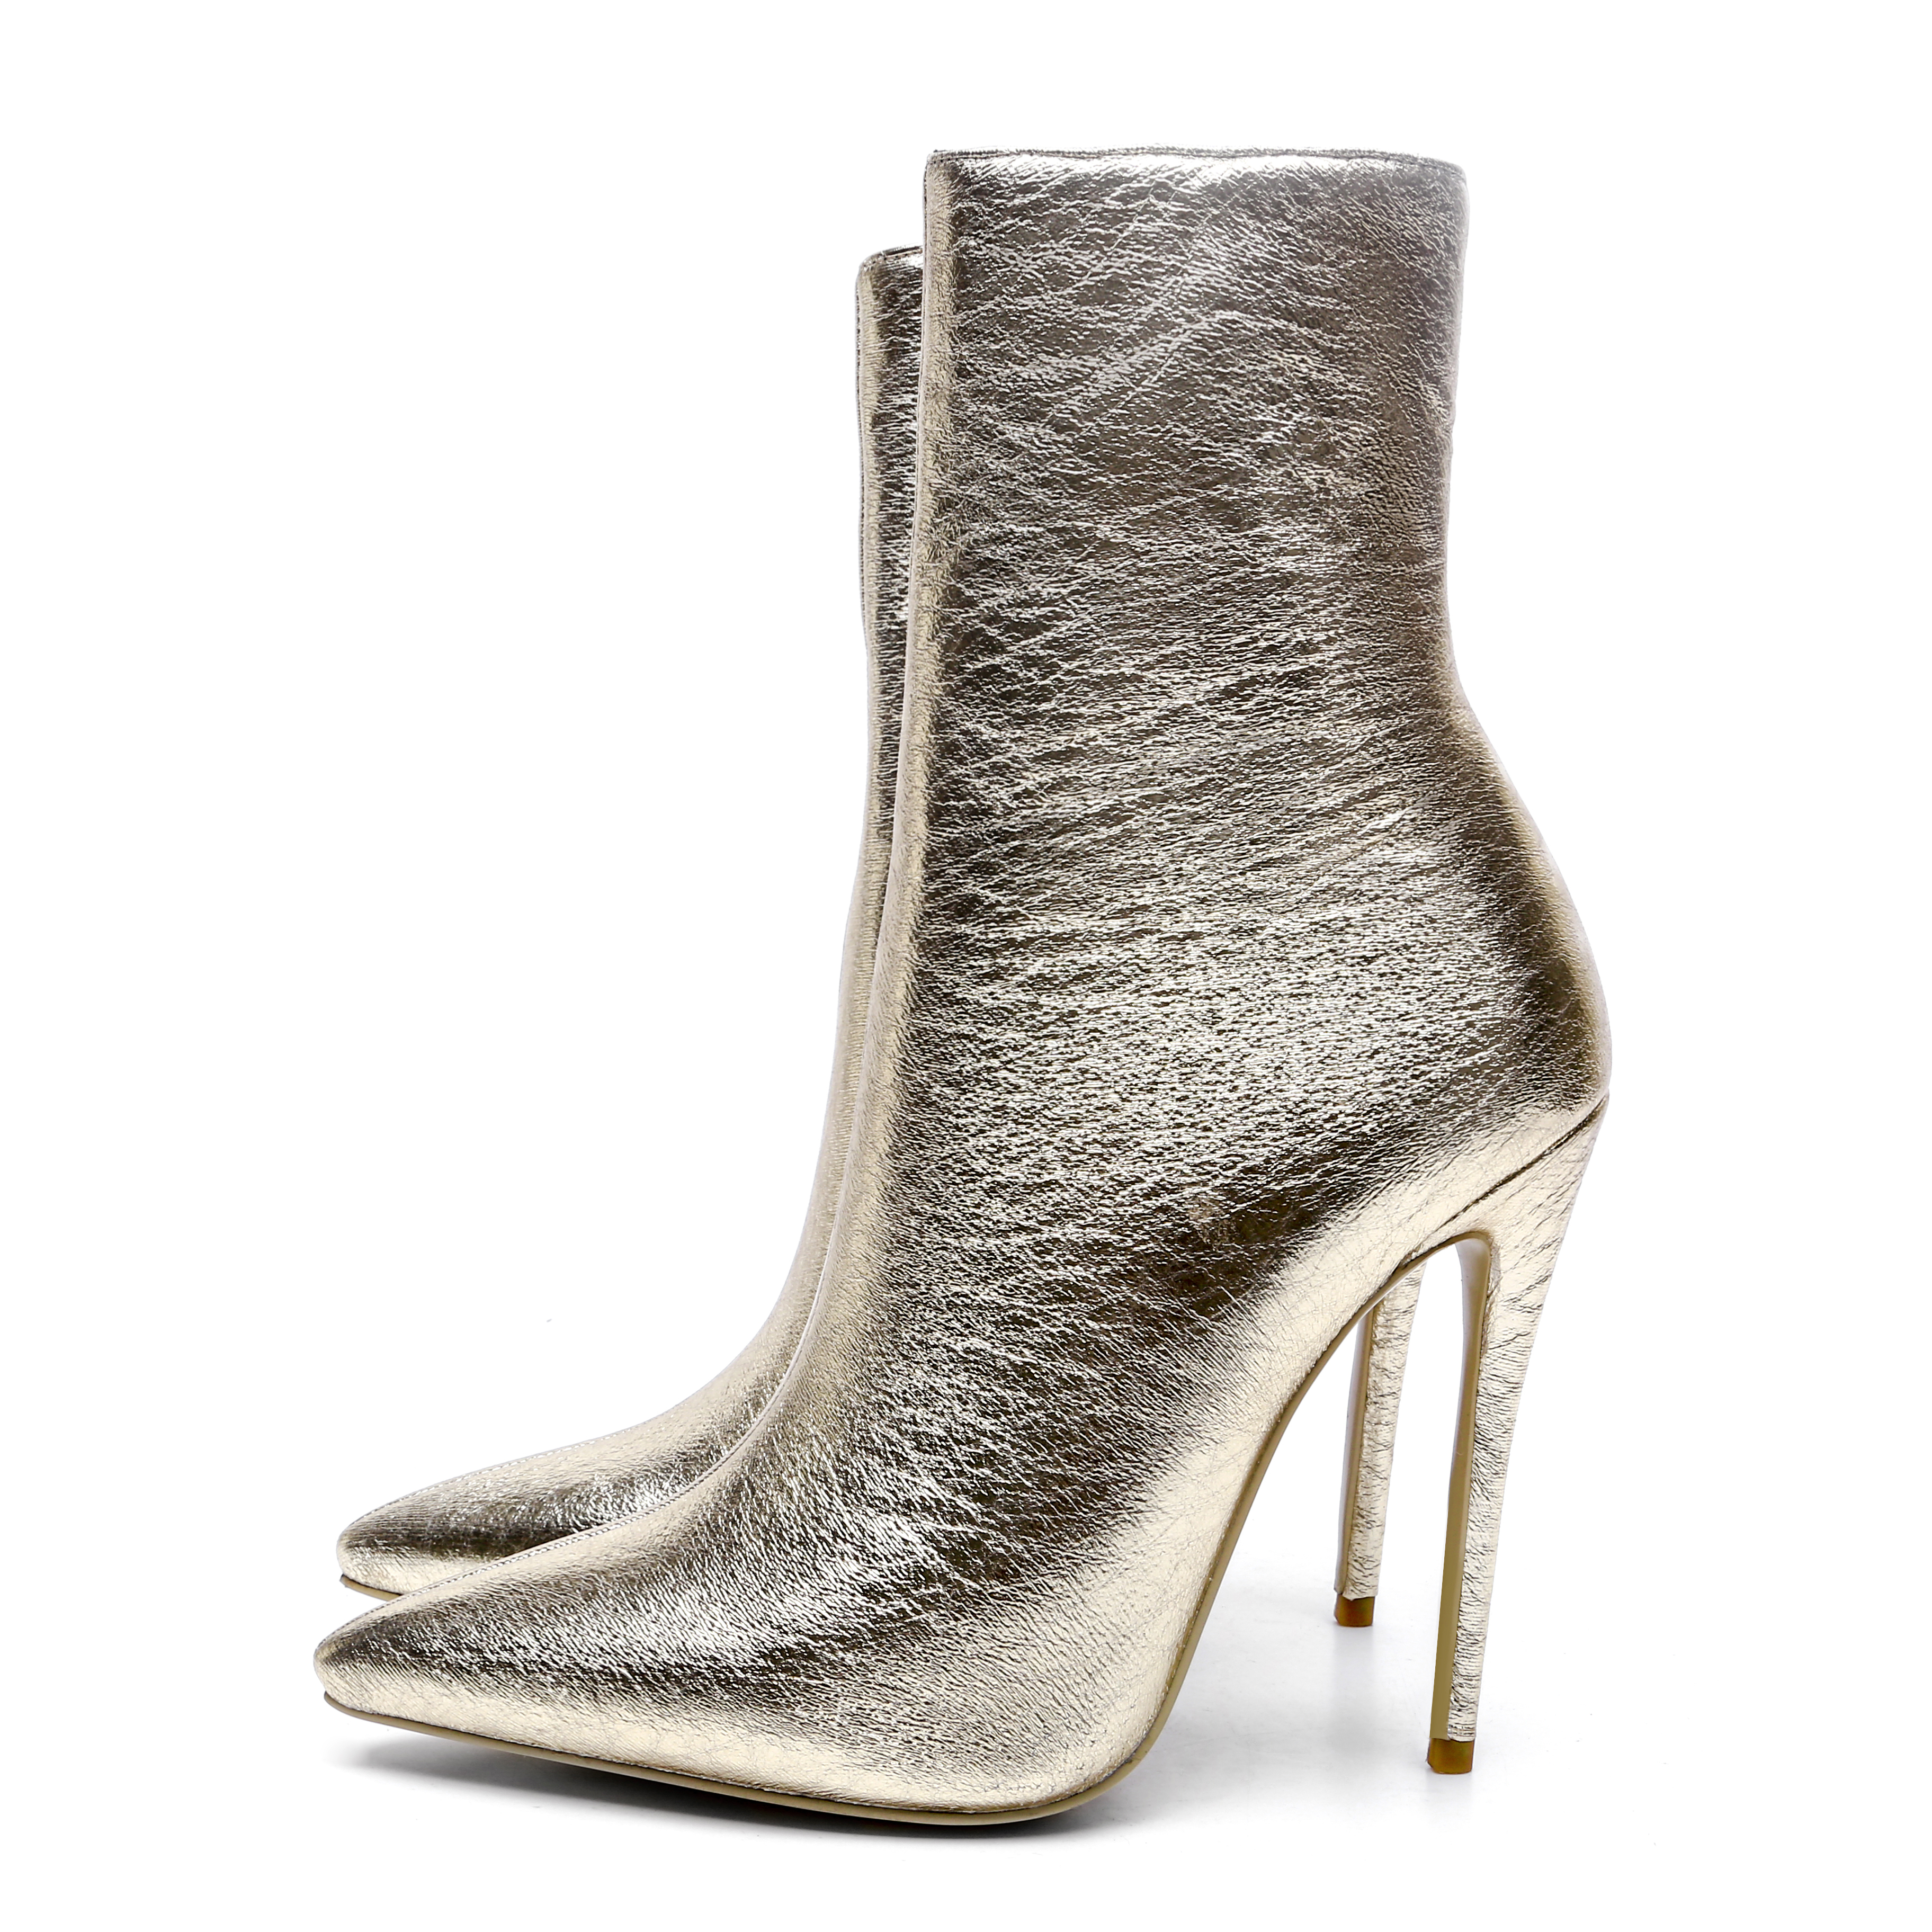 US  58 - 2018 spring autumn zipper ankle boots stilettos high heels 12cm gold  Ankle Booties Pointy Toe Fashion Boots - www.ardenfurtado.com a25577e0c